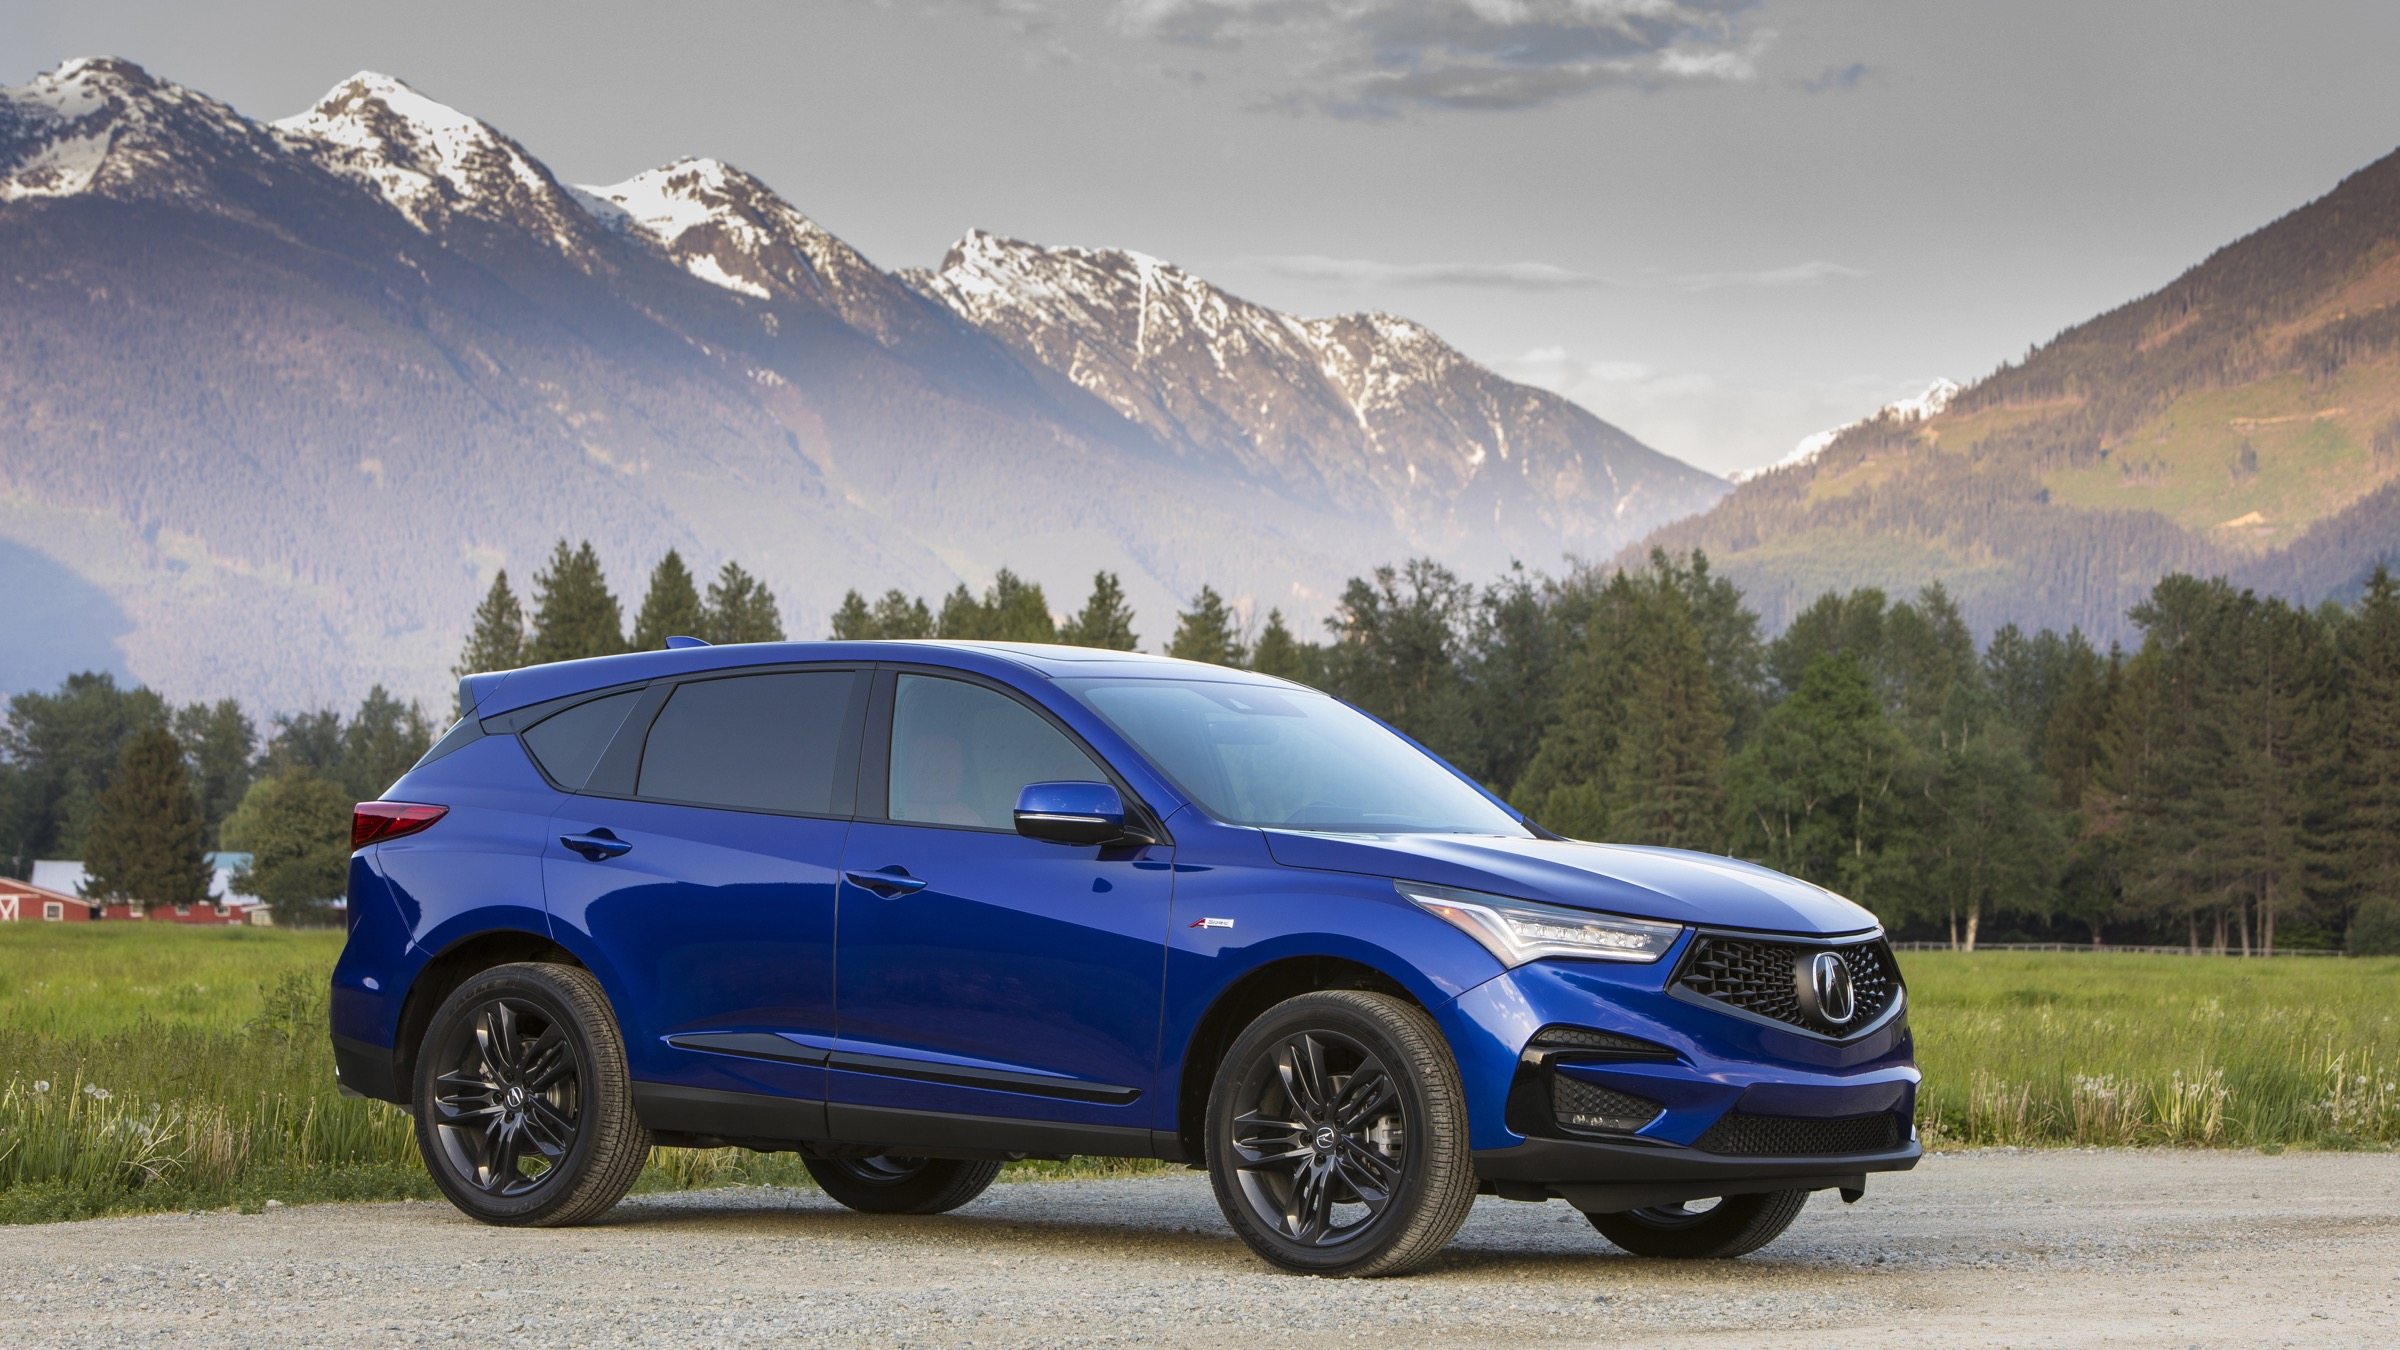 Acura Certified Pre-Owned >> 2020 Acura RDX Review and Buying Guide | Specs, features ...